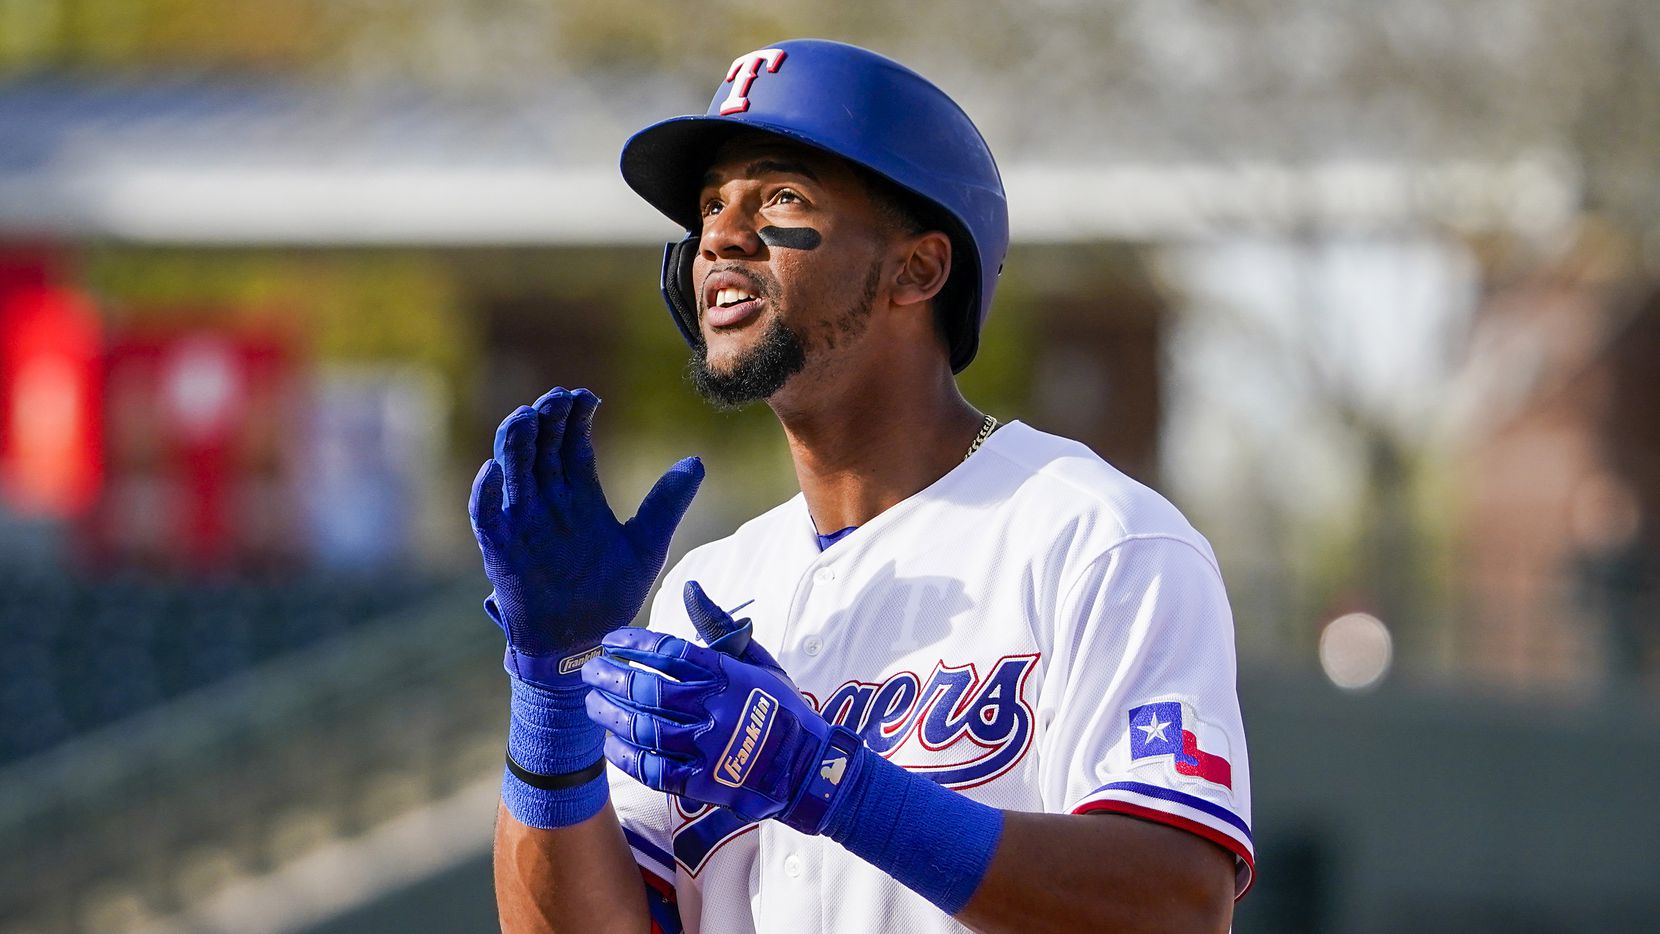 Rangers outfielder Leody Taveras celebrates after reaching base on a single during the eighth inning of a spring training game against the Chicago Cubs at Surprise Stadium on Thursday, Feb. 27, 2020, in Surprise, Ariz.